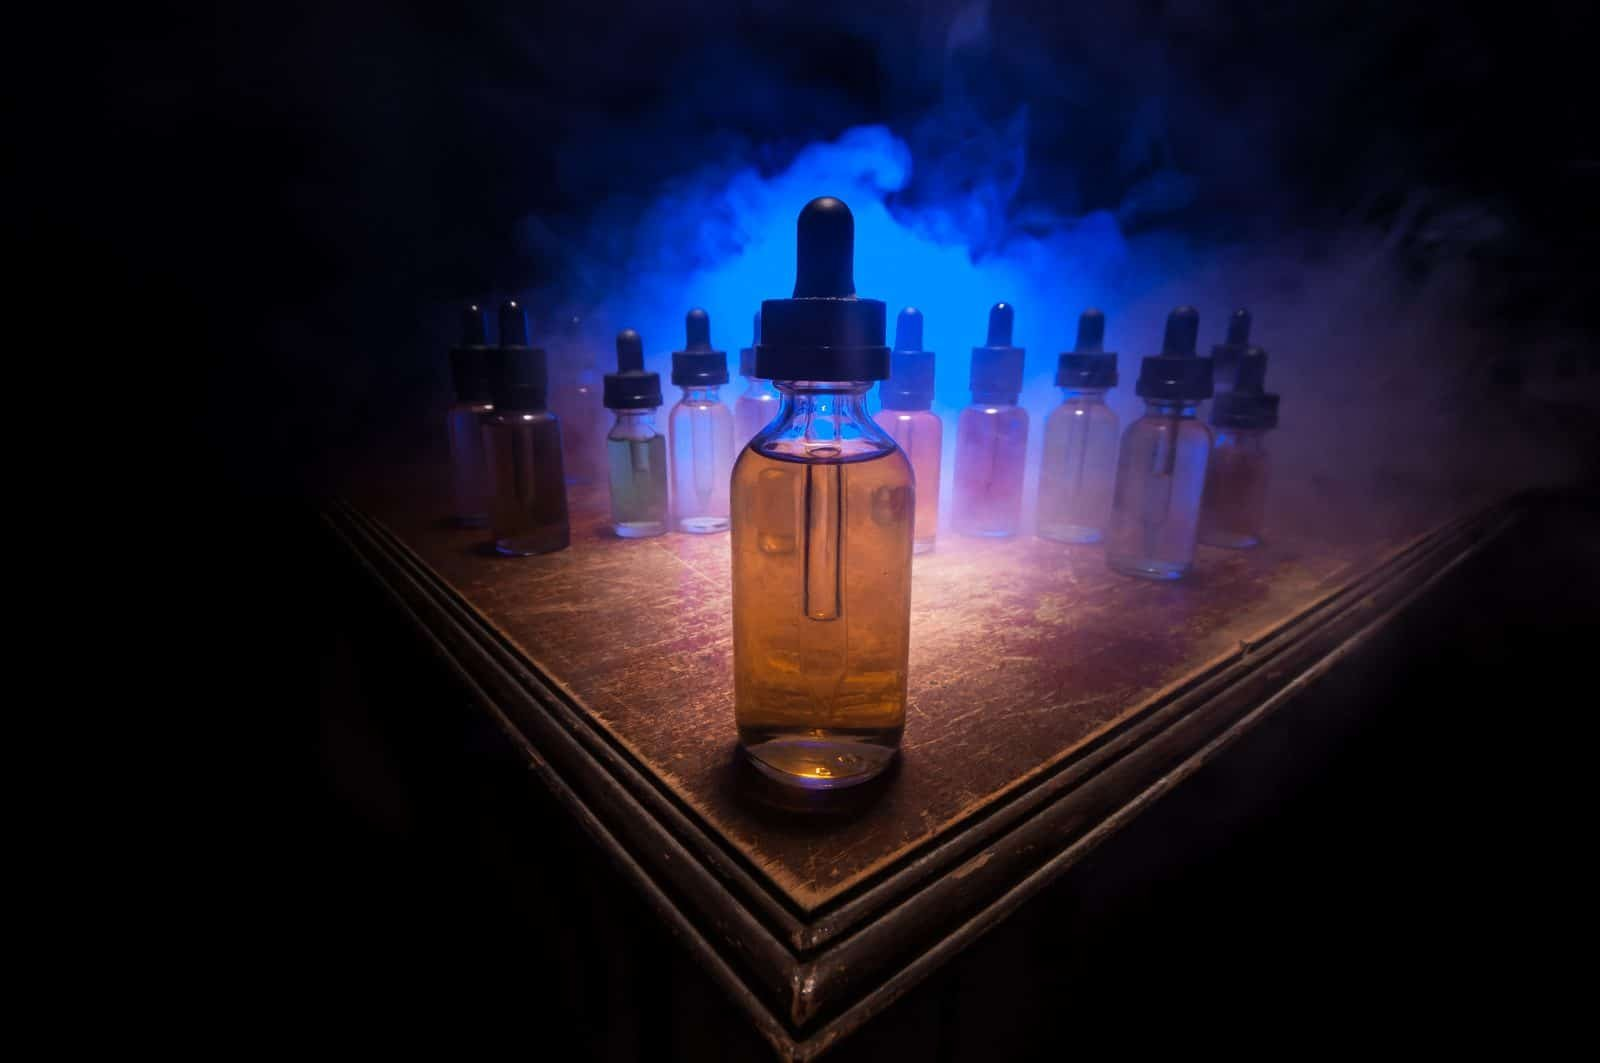 The Kind Pen vape e-liquid